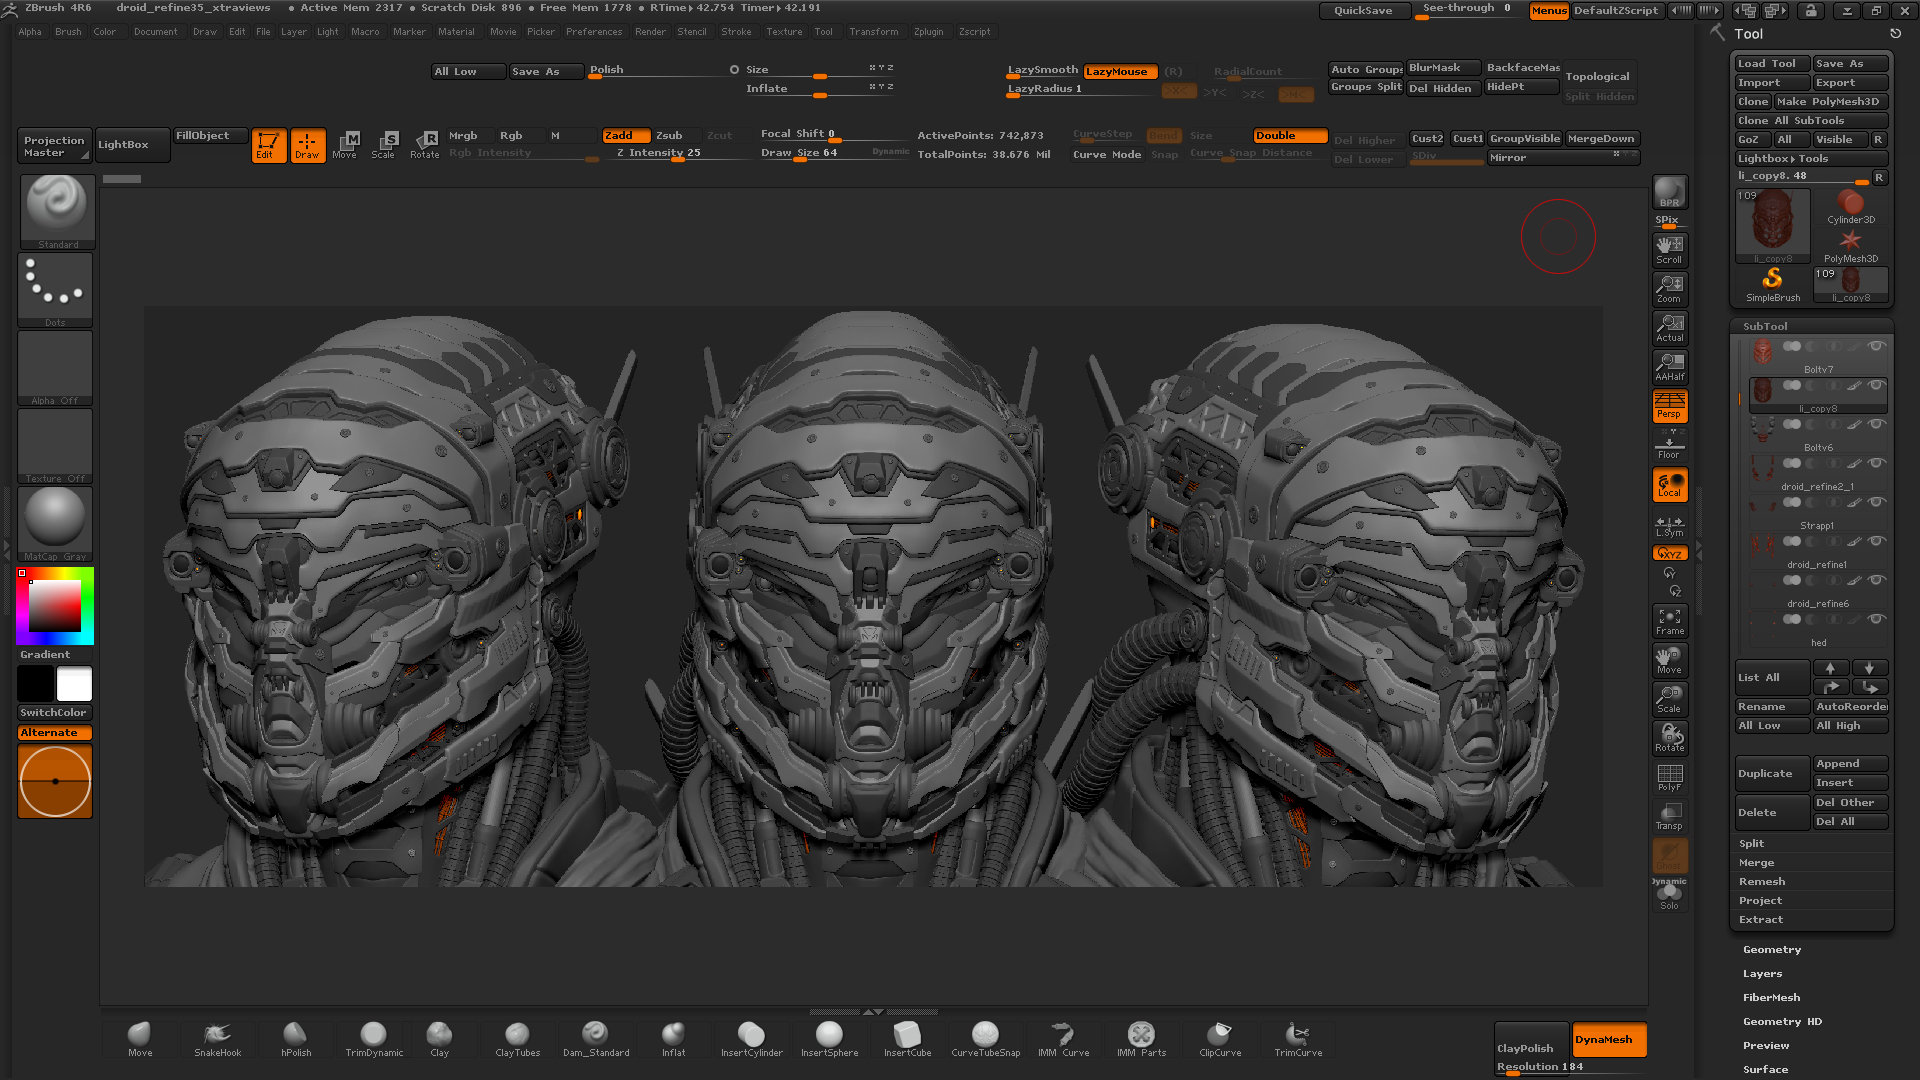 Riyahd cassiem sci fi character design in zbrush teaser for Sci fi decor